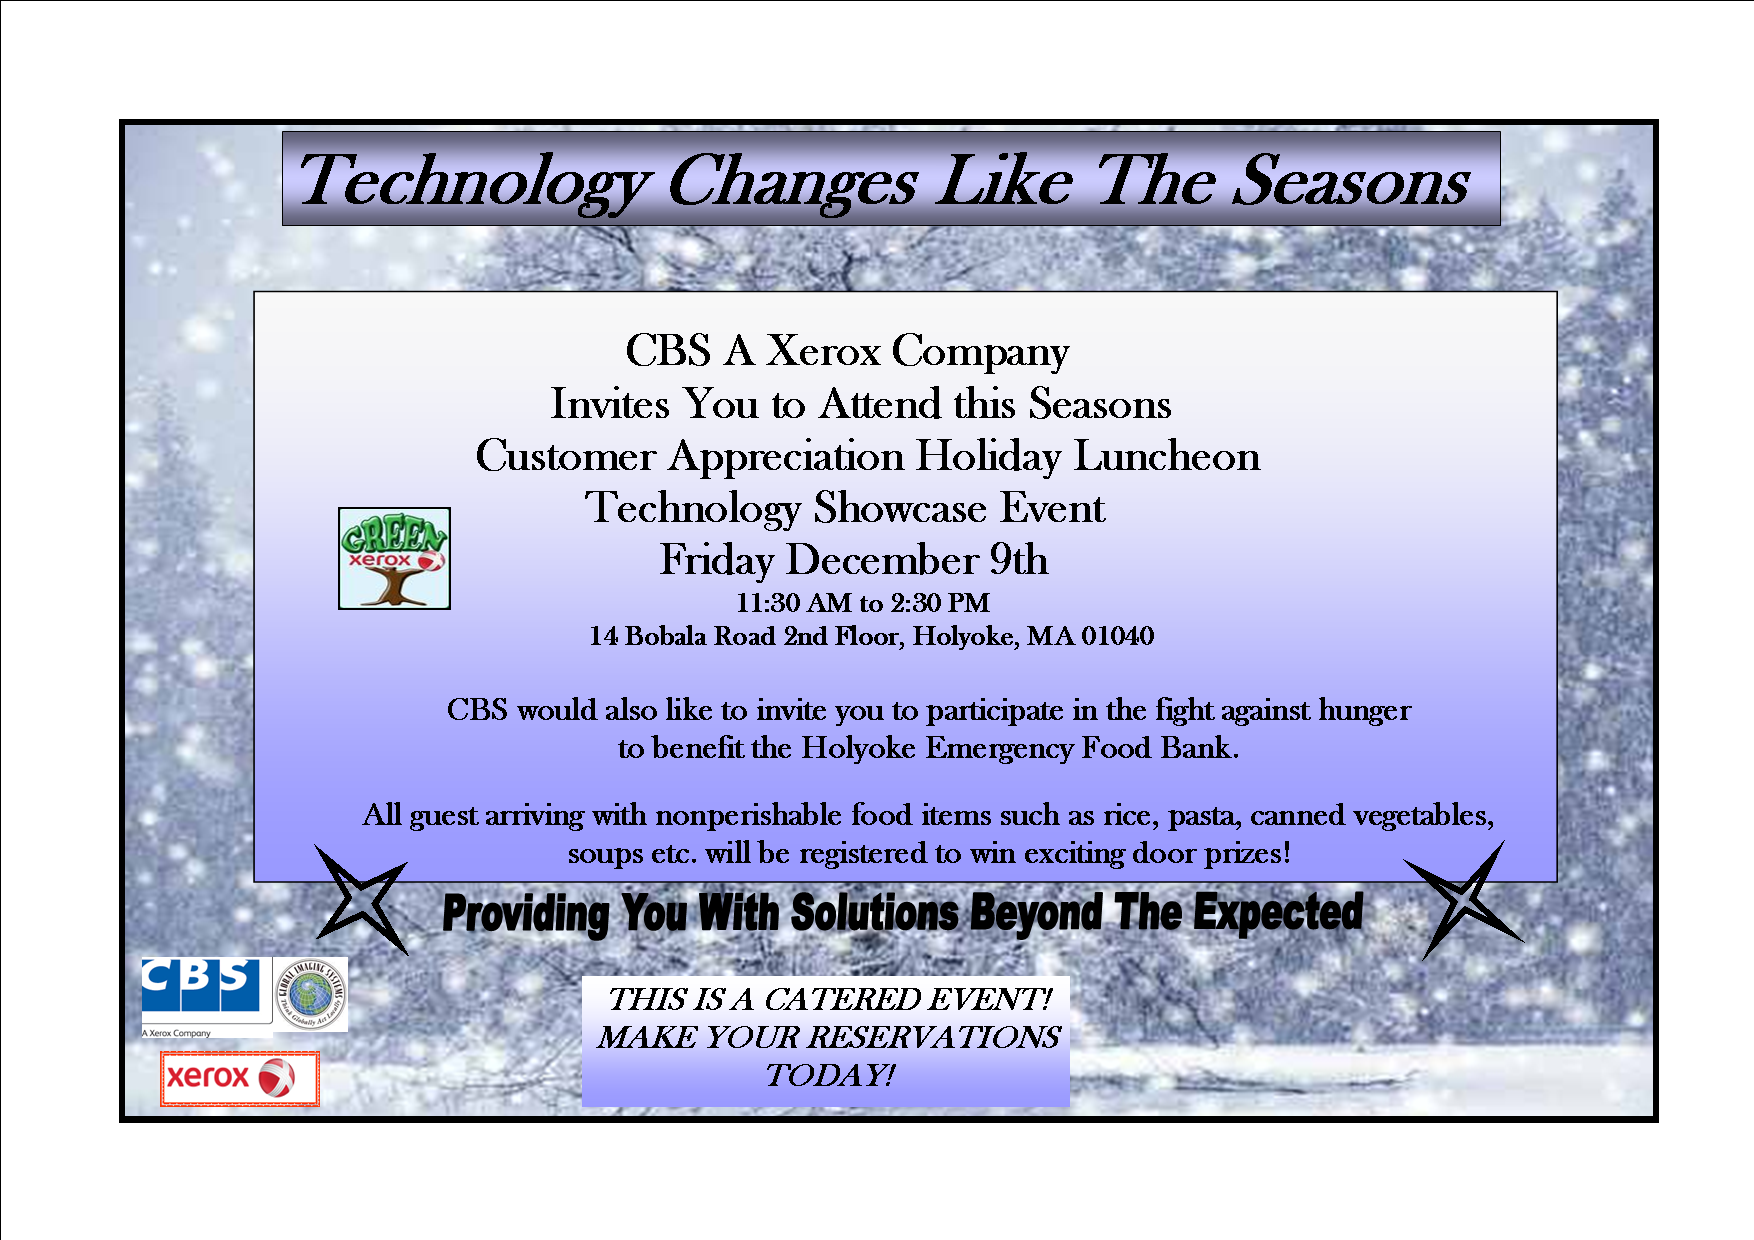 Holiday Luncheon Invitation For Business